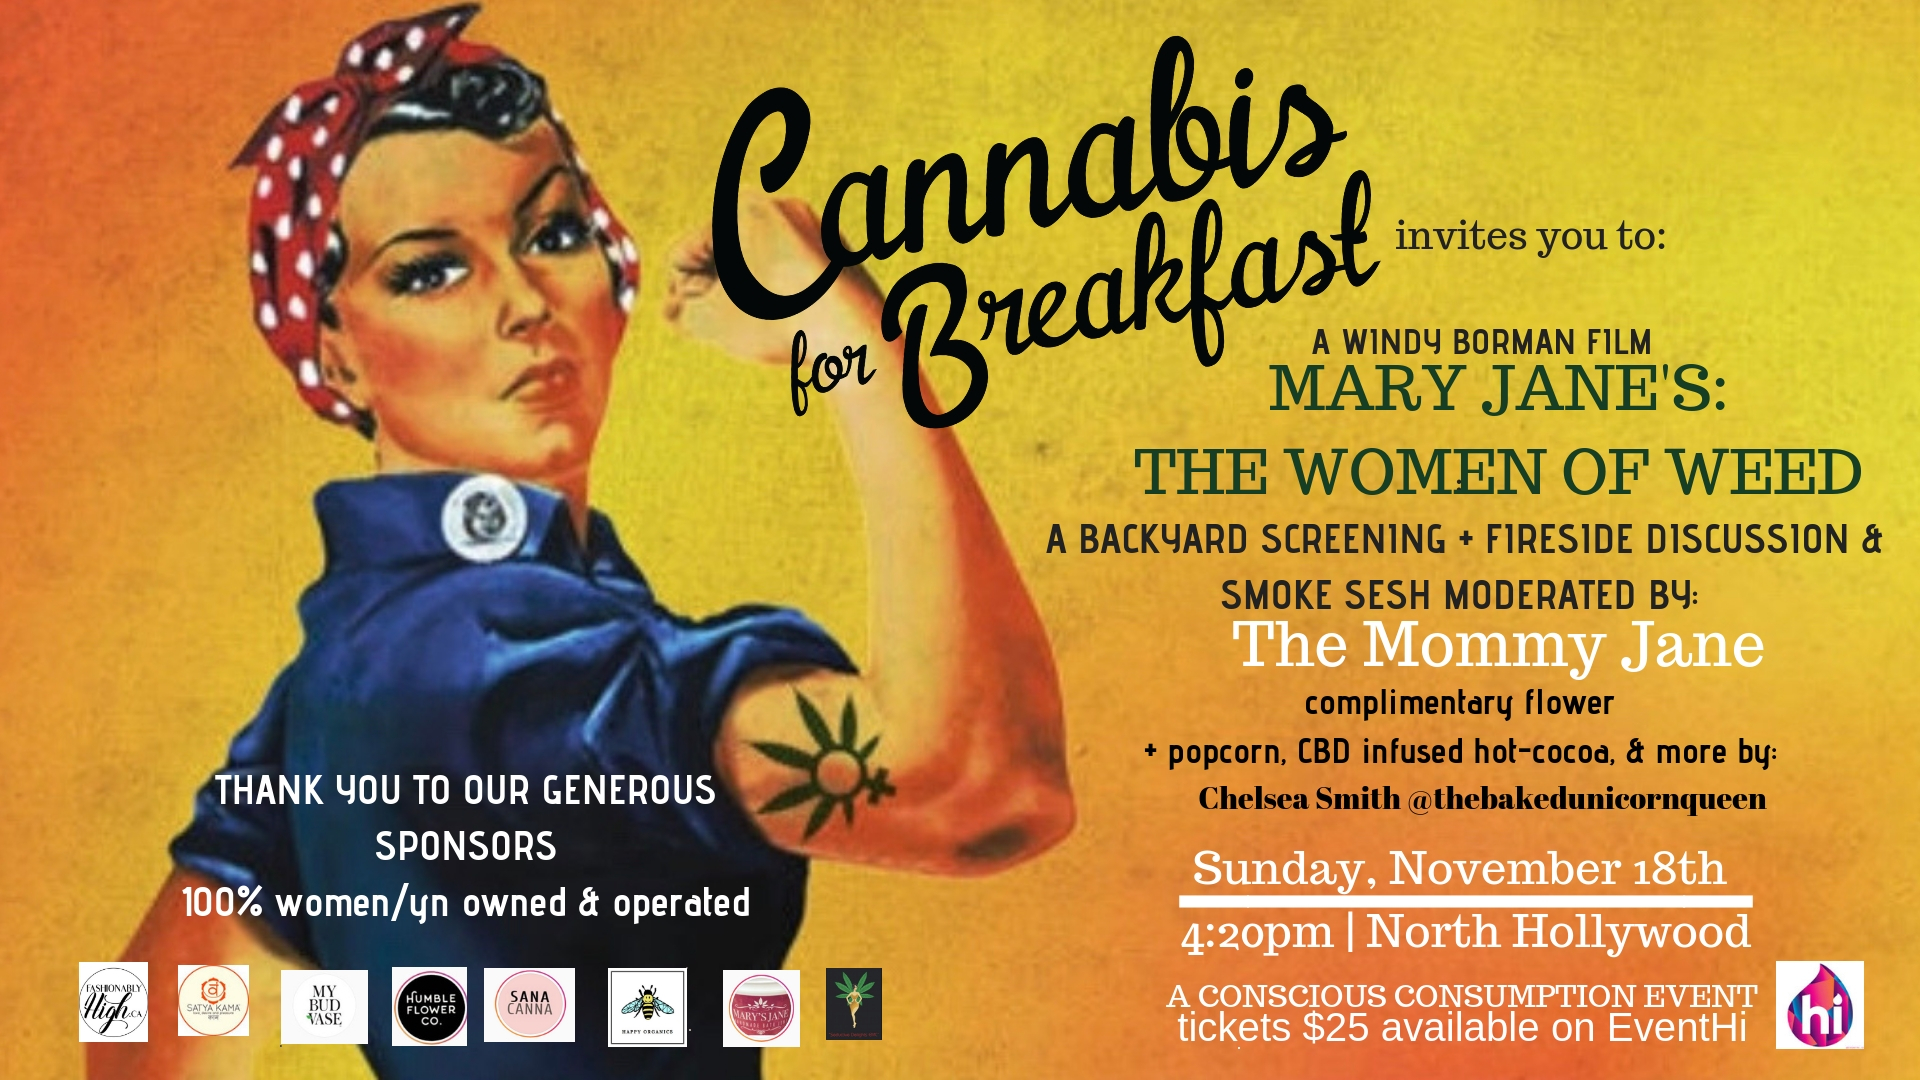 MARY JANE'S: THE WOMEN OF WEED